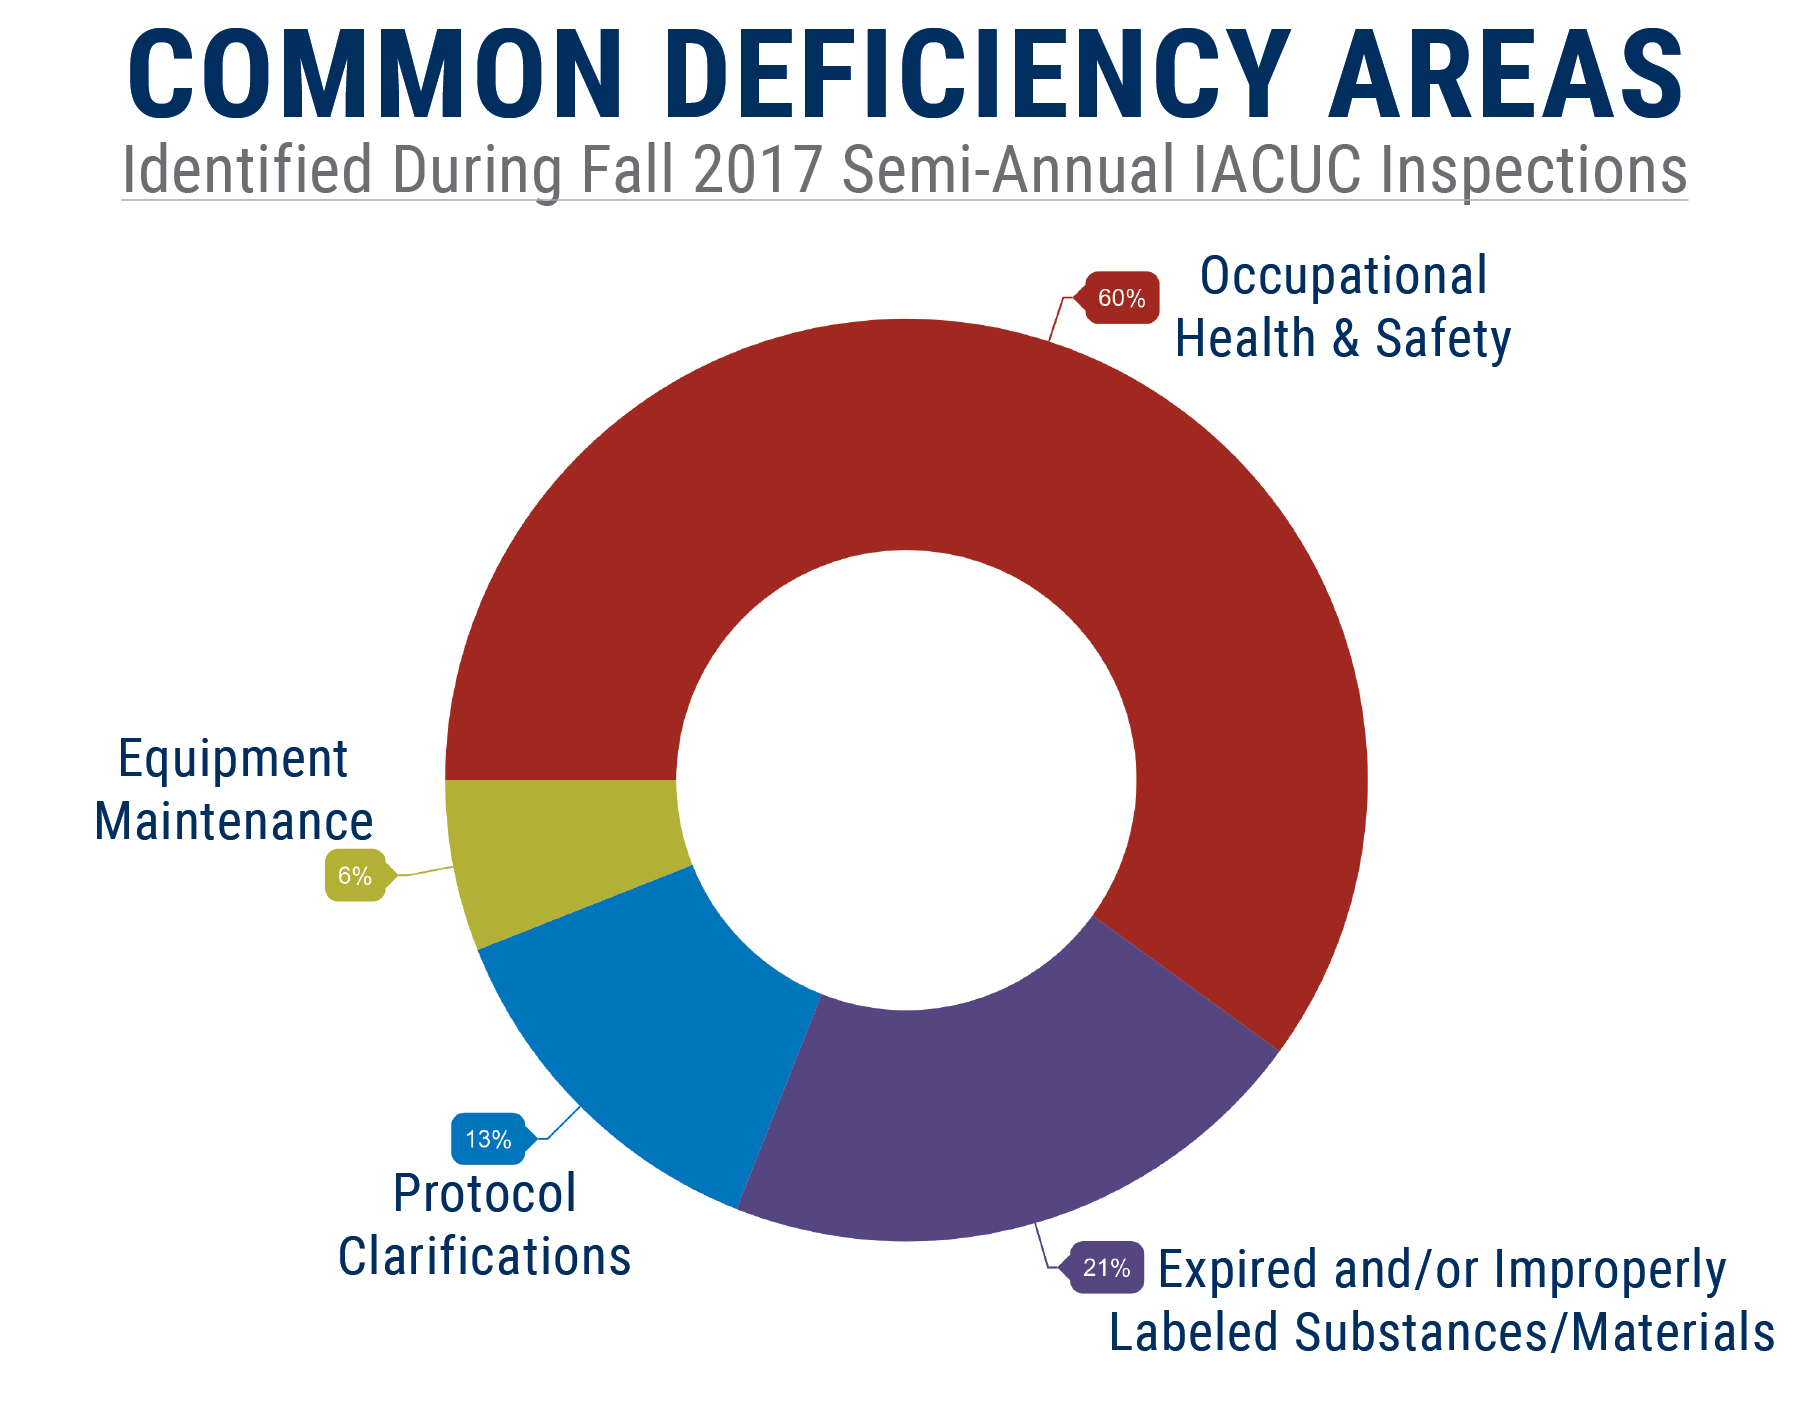 Donut chart outlining common deficiency areas found during Fall 2017 semi-annual IACUC facility inspections